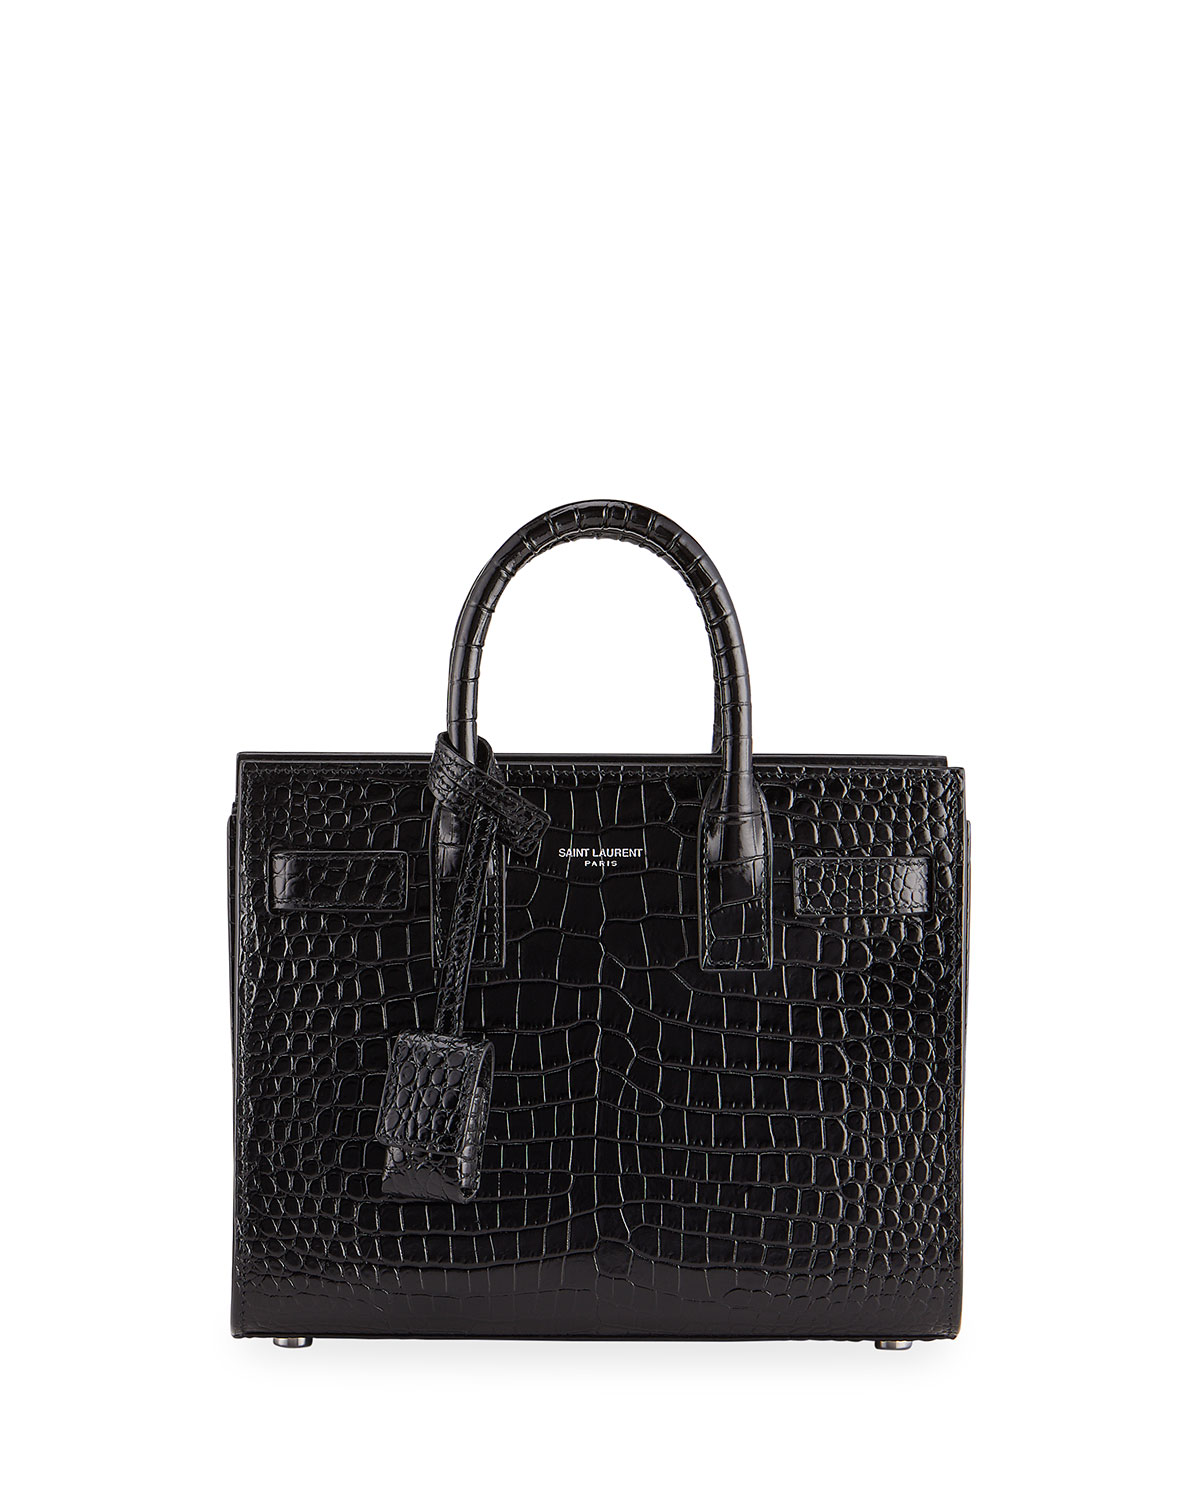 e482e29b526 Saint Laurent Nano Sac de Jour Croco-Effect Satchel Bag